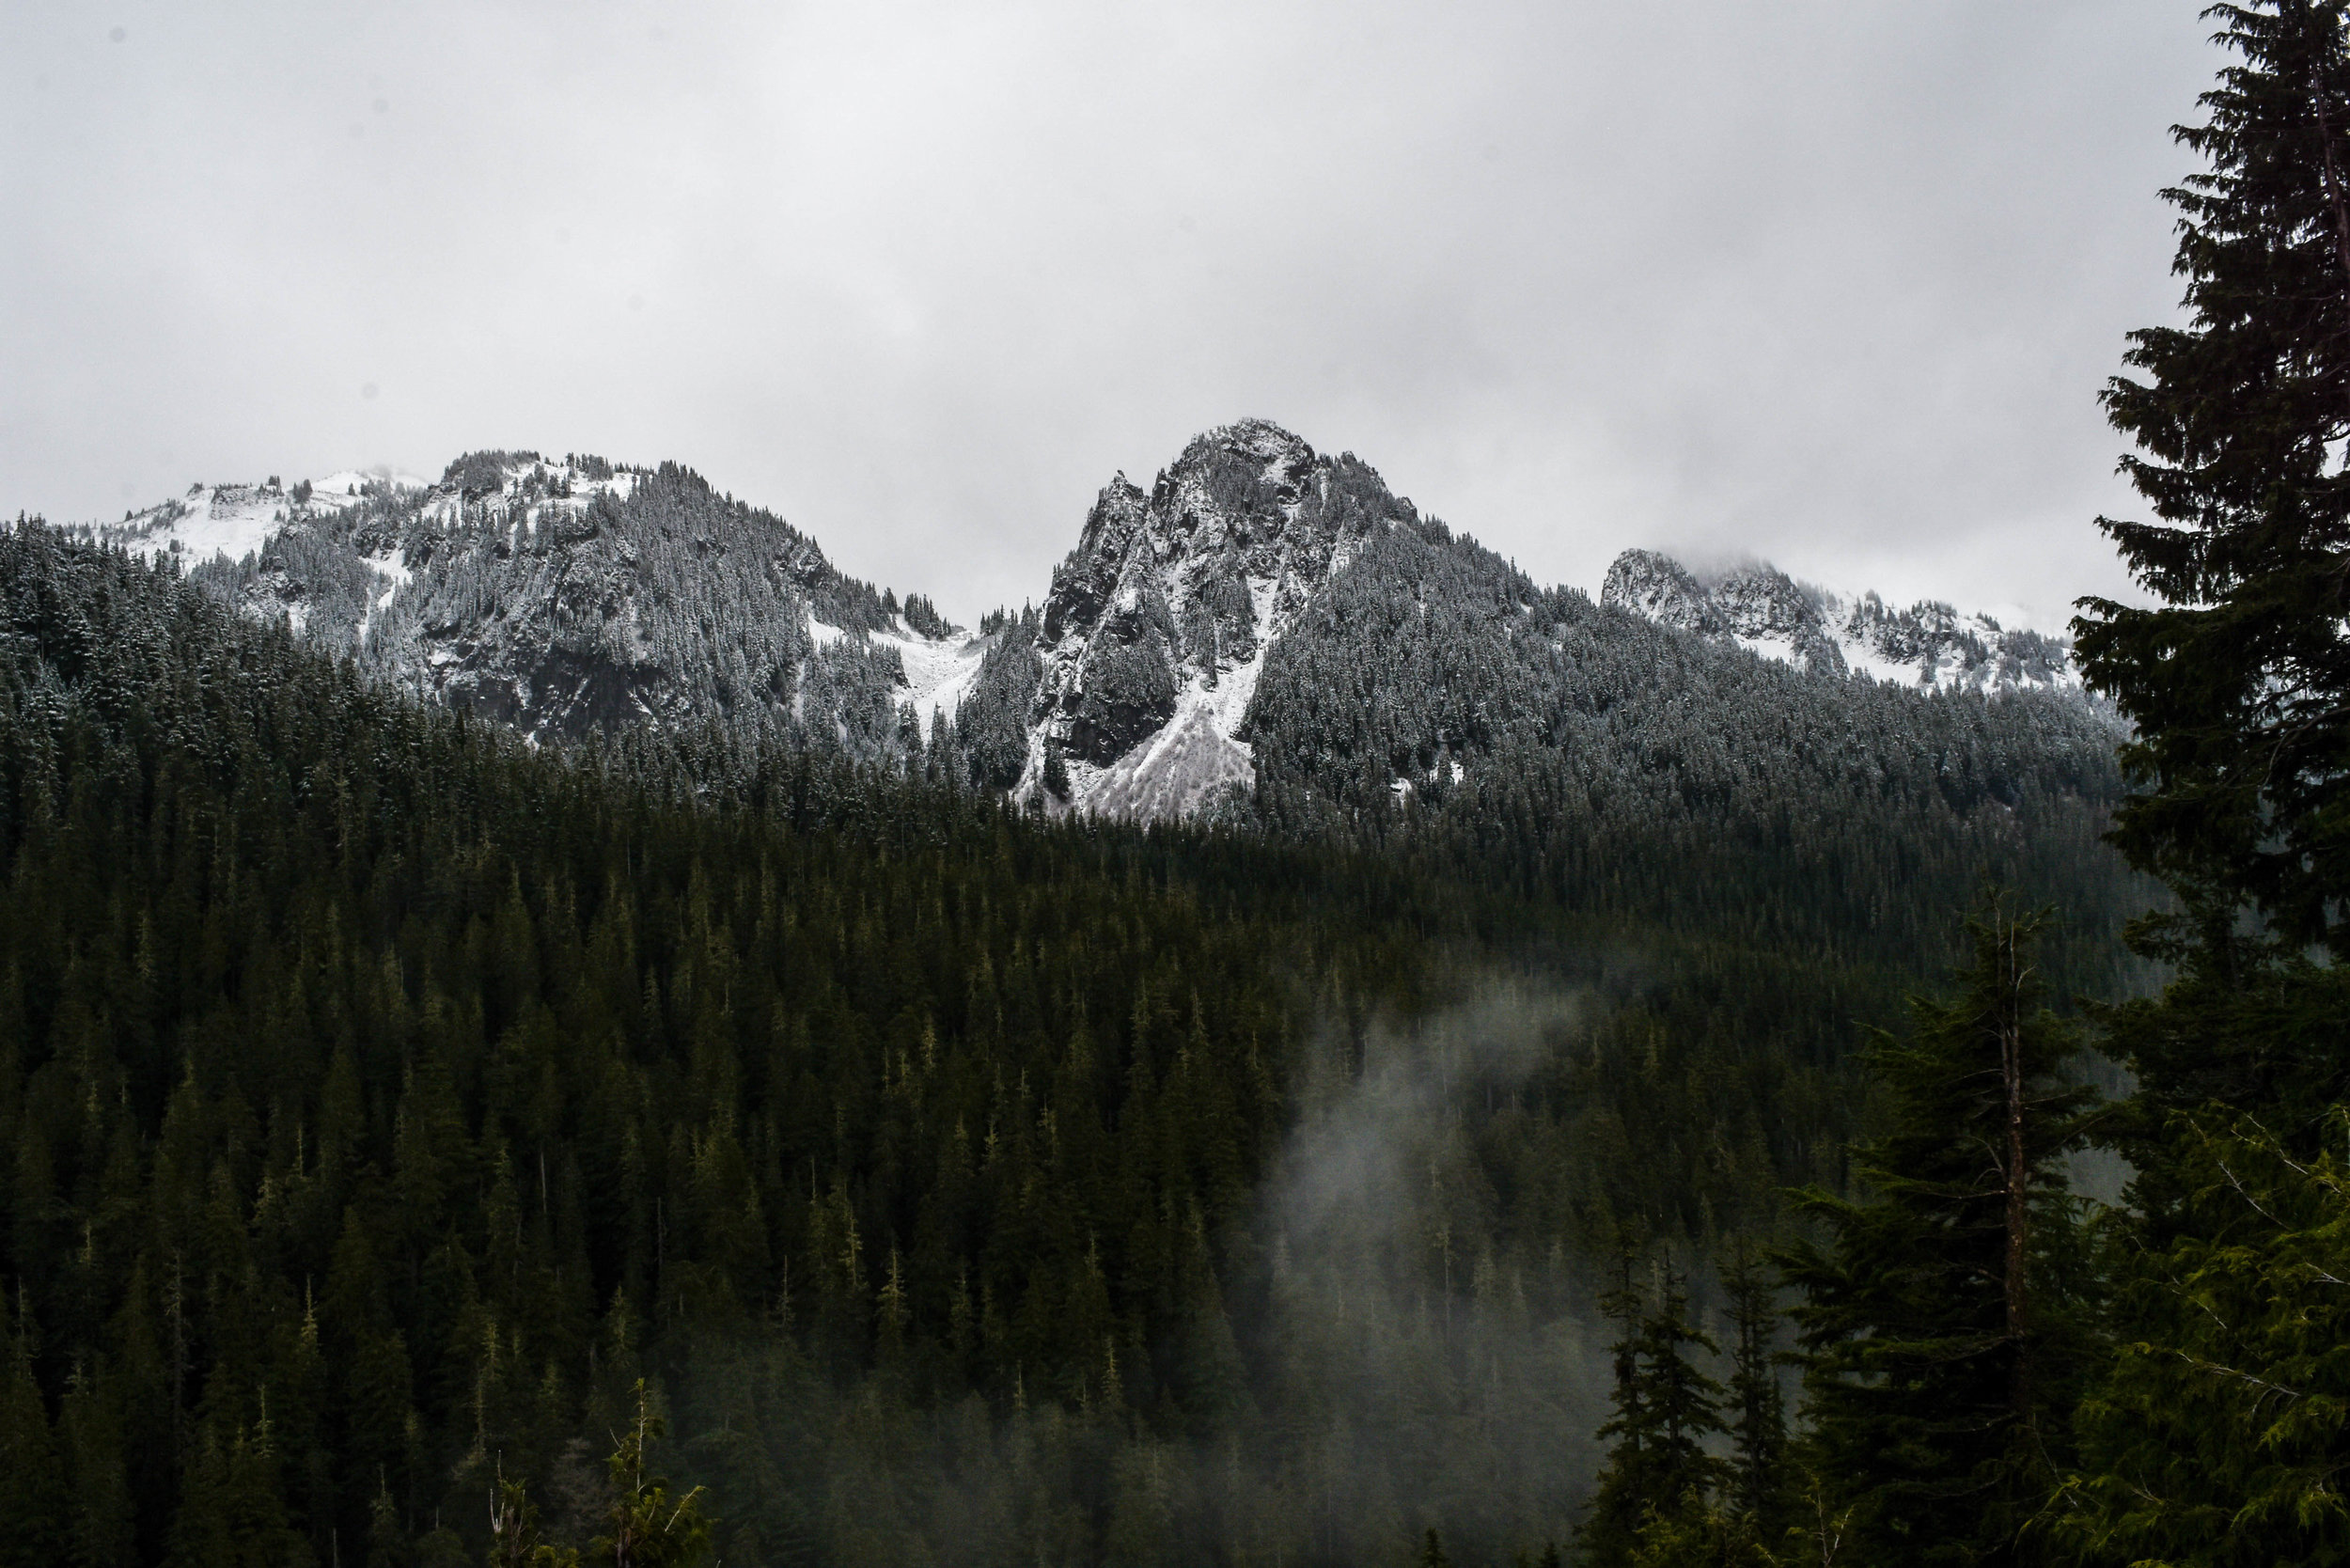 During the drive ascending Mt. Rainier, my friends and I stopped to gaze out over the slopes of nearby mountains, and marvel at the sharp contrast between the snow-covered alpine trees and those lower down that still lay bare.